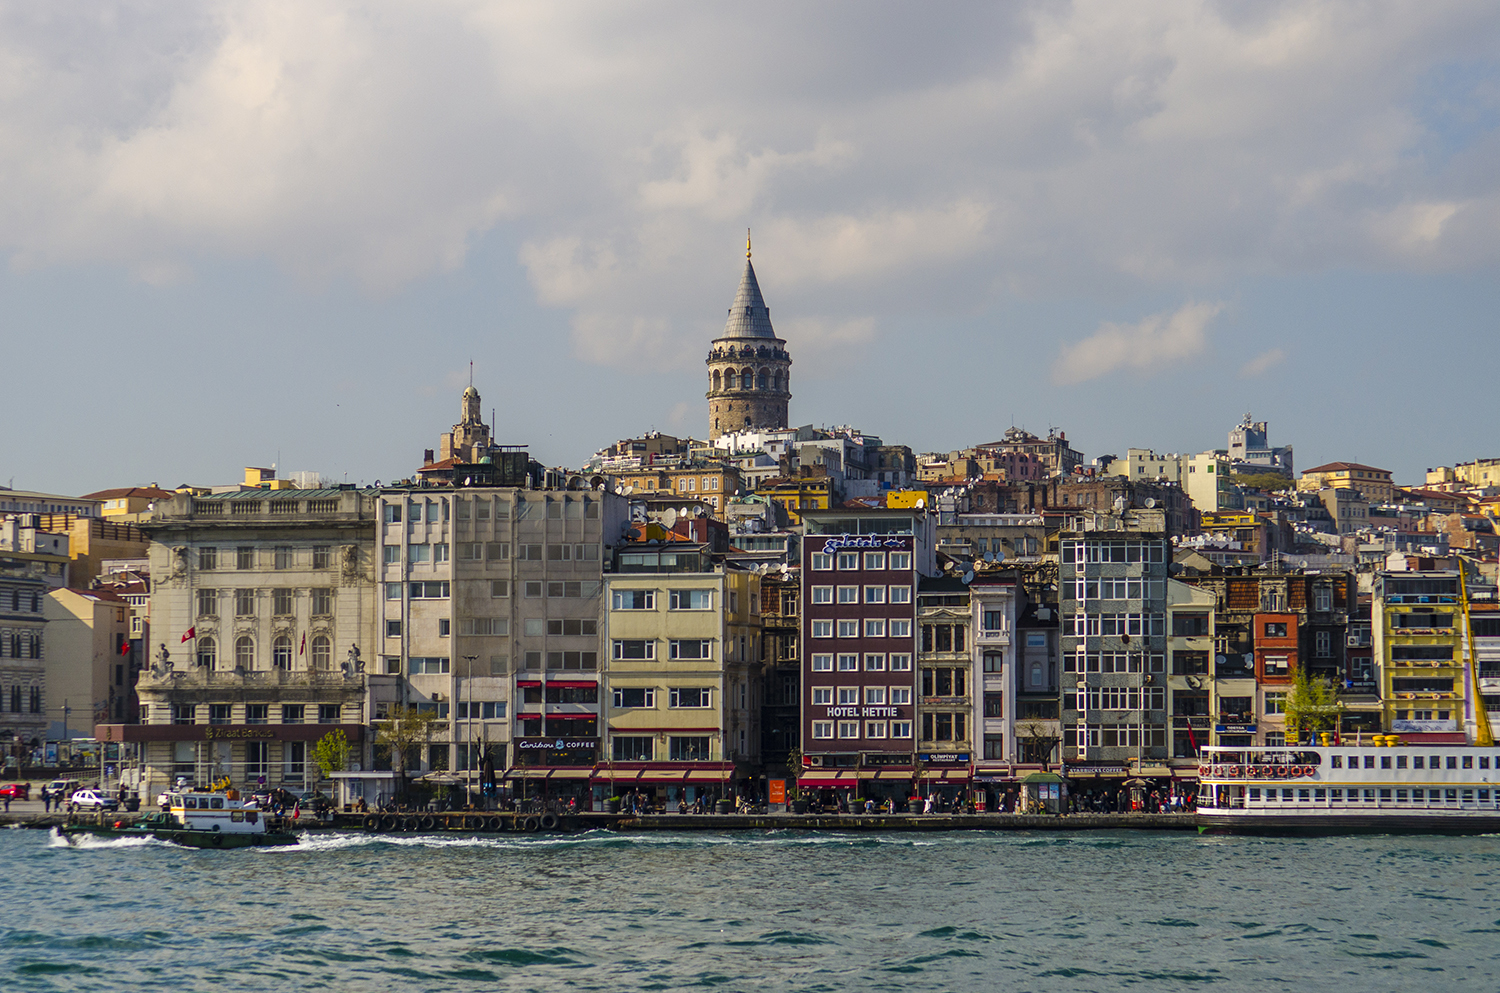 Galata Tower rising above the city as seen from the Golden Horn.